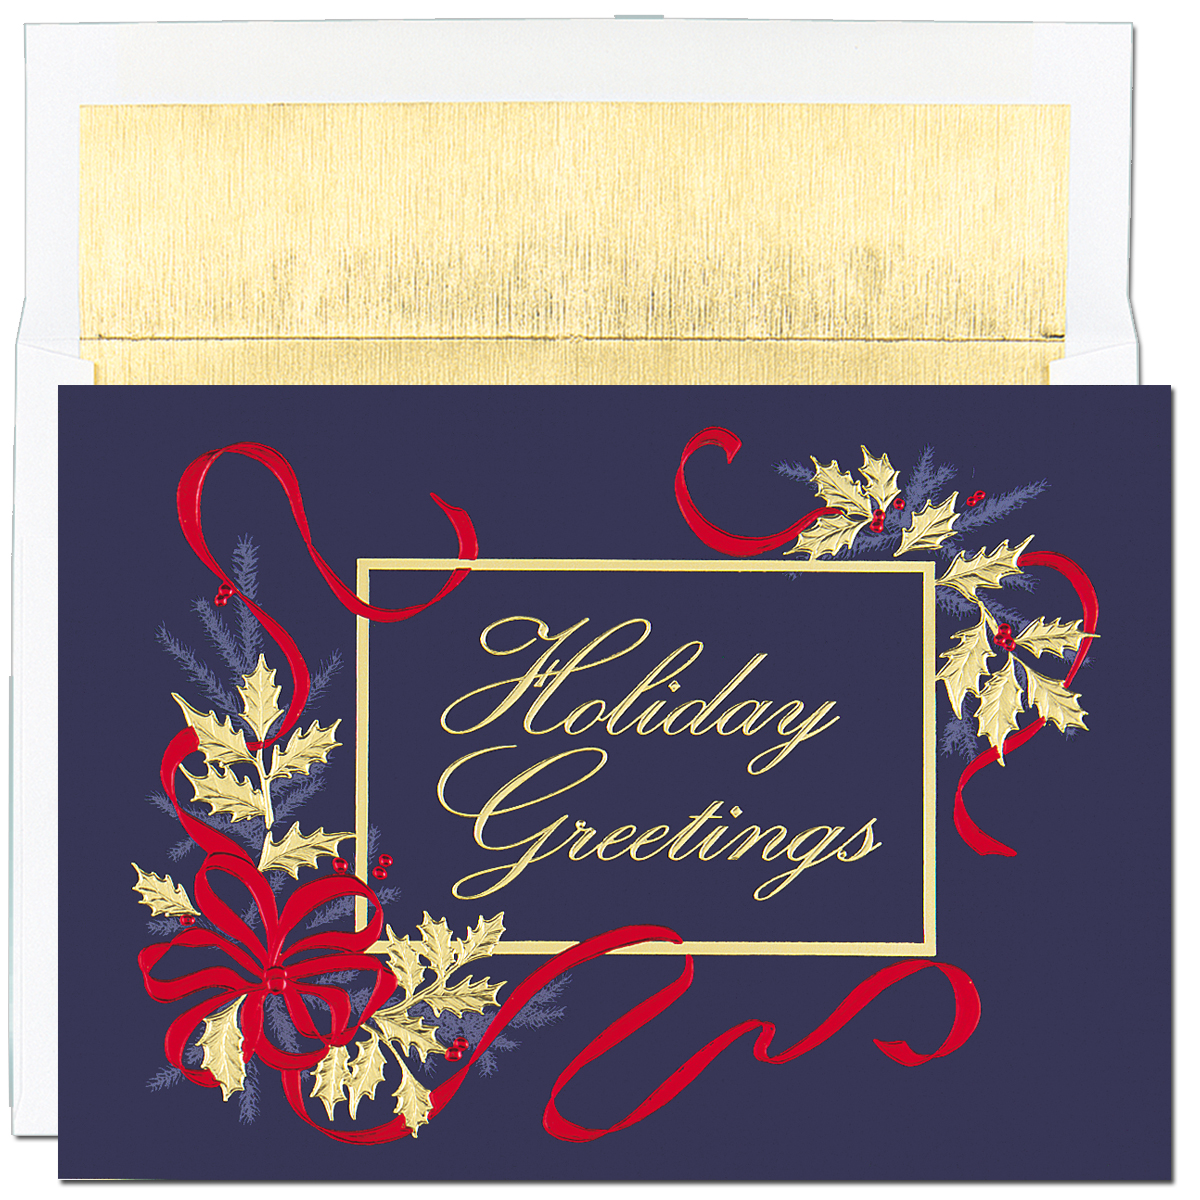 Dark Blue Foil Ribbon Holiday Greetings - Beautiful red and gold foiled embossed holiday card with package die cut.  Blank inside is perfect for corporate holiday cards or for the individual that would like to add their own personal greeting. Impress In Print will personalize your greeting and add images or company logos to cards. (Please note image fee is $25.00) Comes with gold lined envelope.